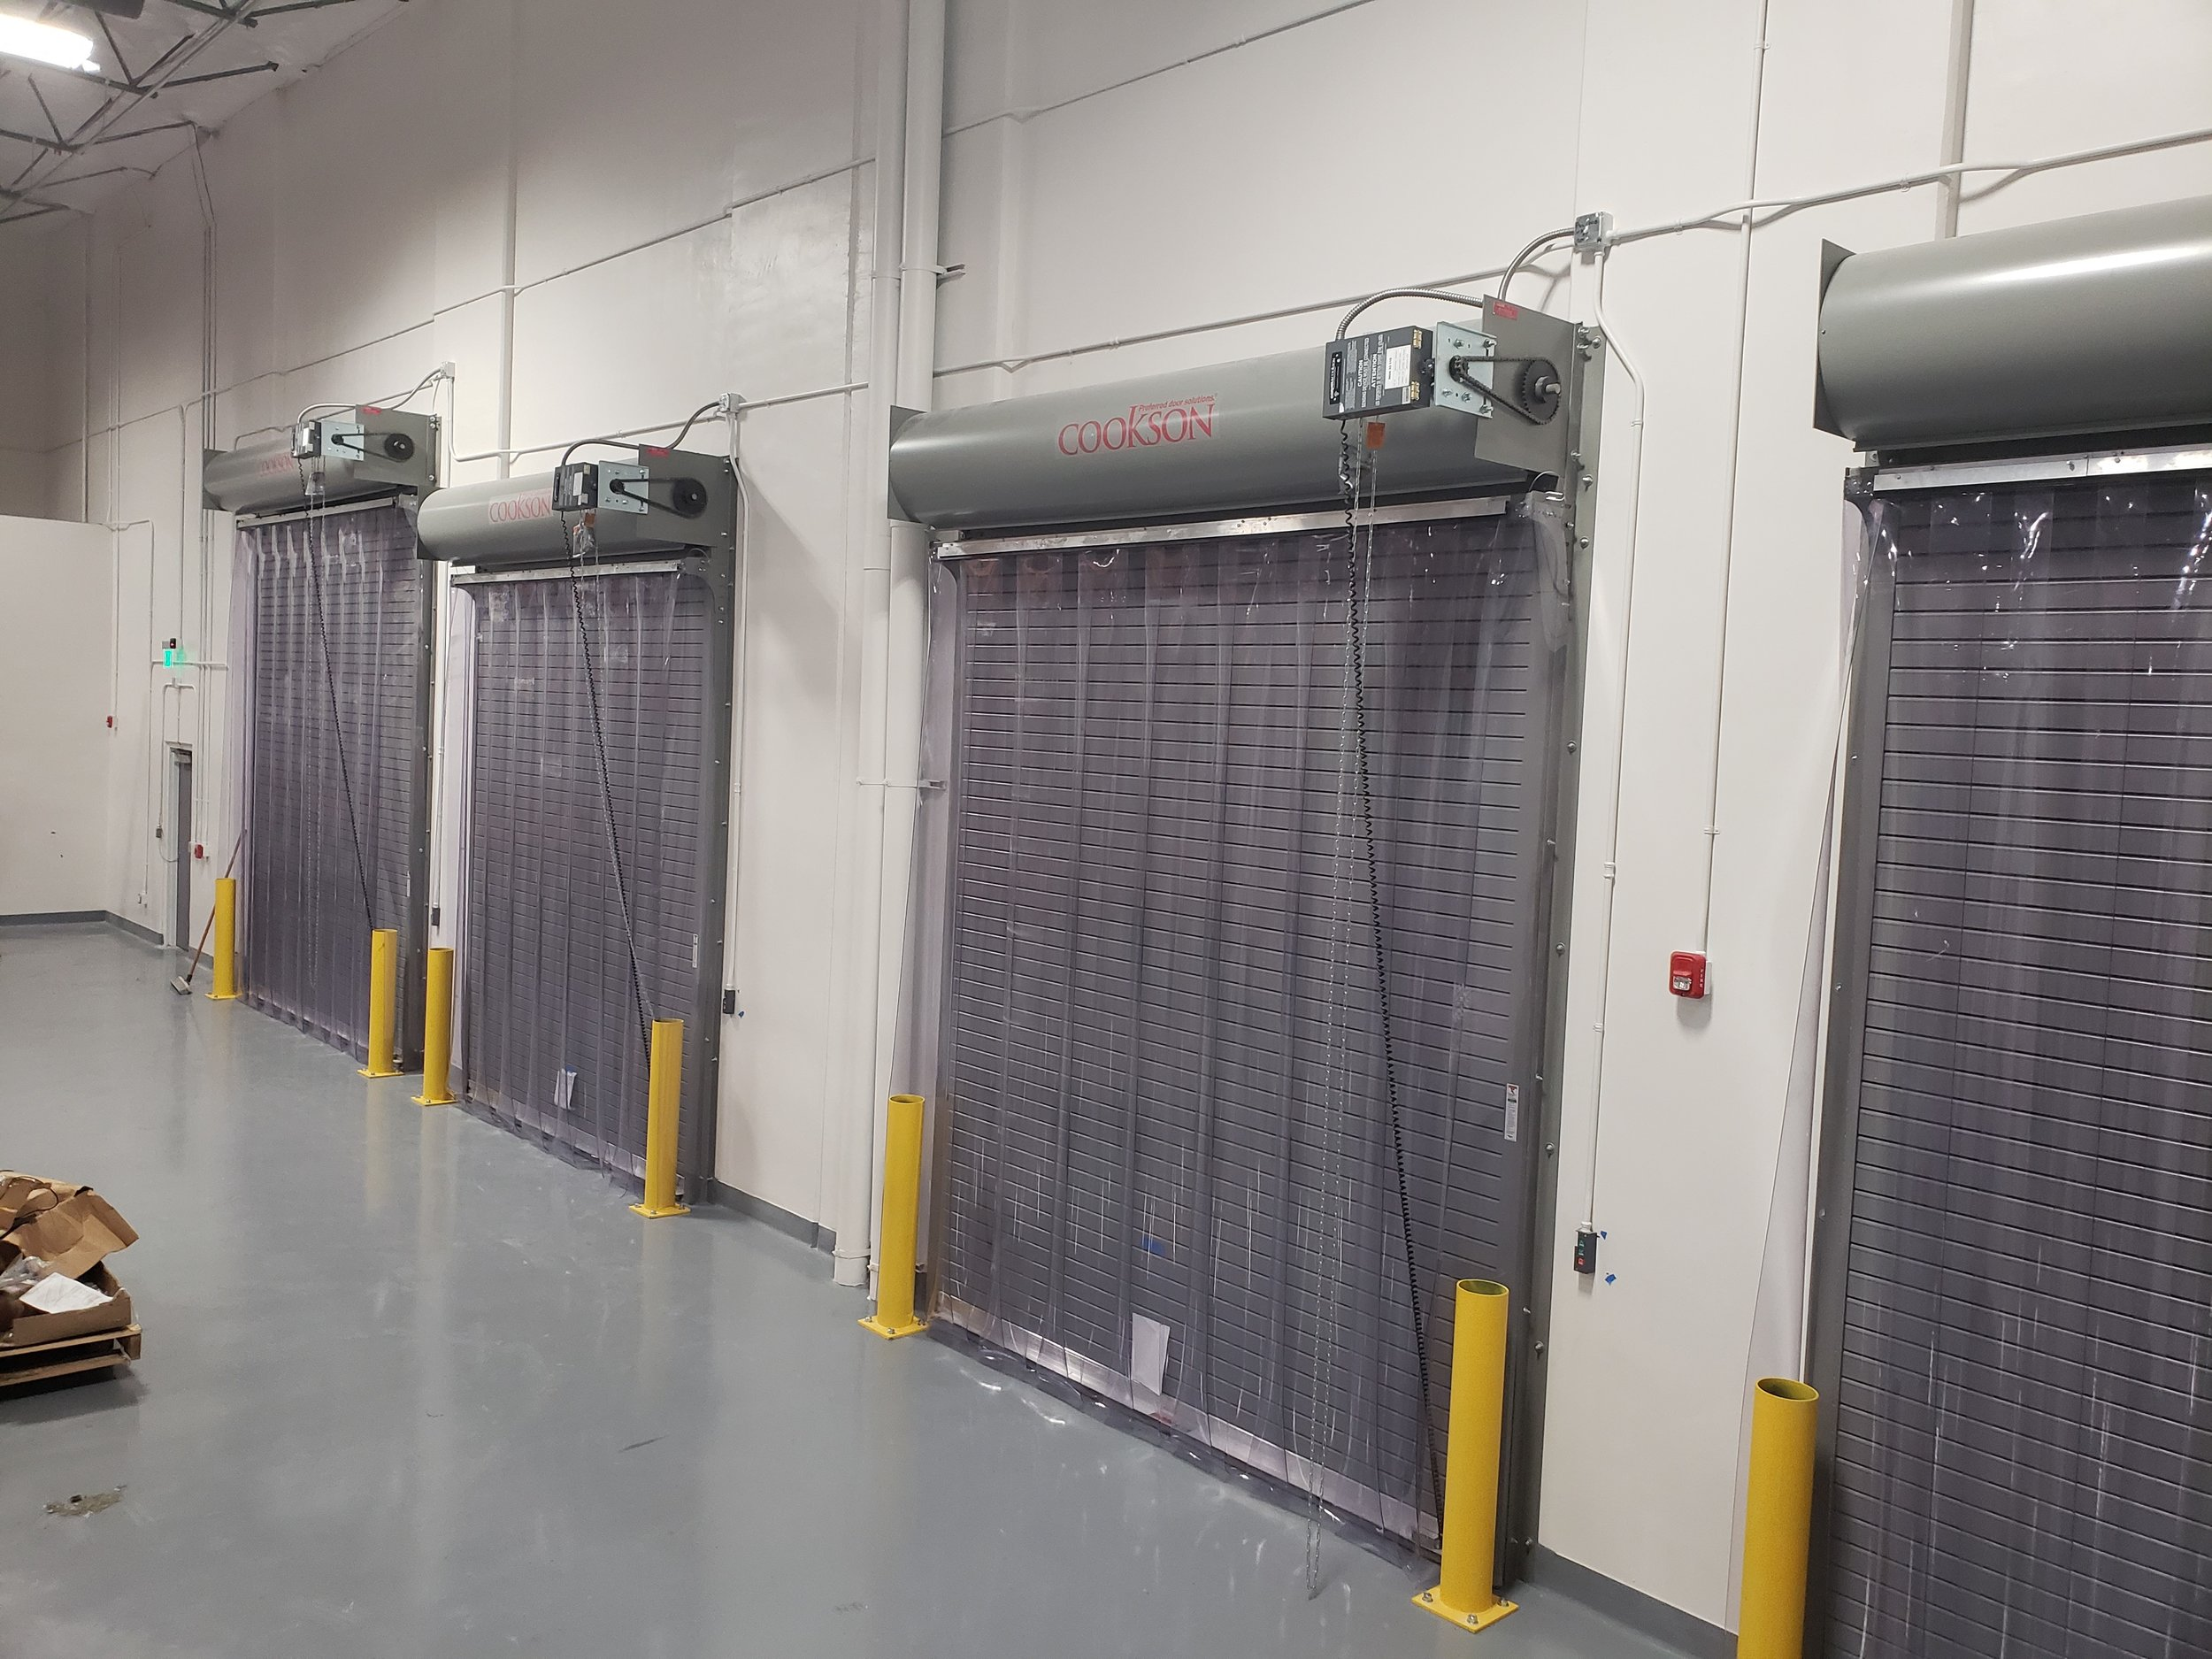 Strip Doors - Strip doors are ideal in reducing energy costs, separating workplaces, and streamlining workflow. Unlike standard steel or metal doors, strip doors allow people, objects, and machinery to easily move through the plastic strips without physically opening any doors.